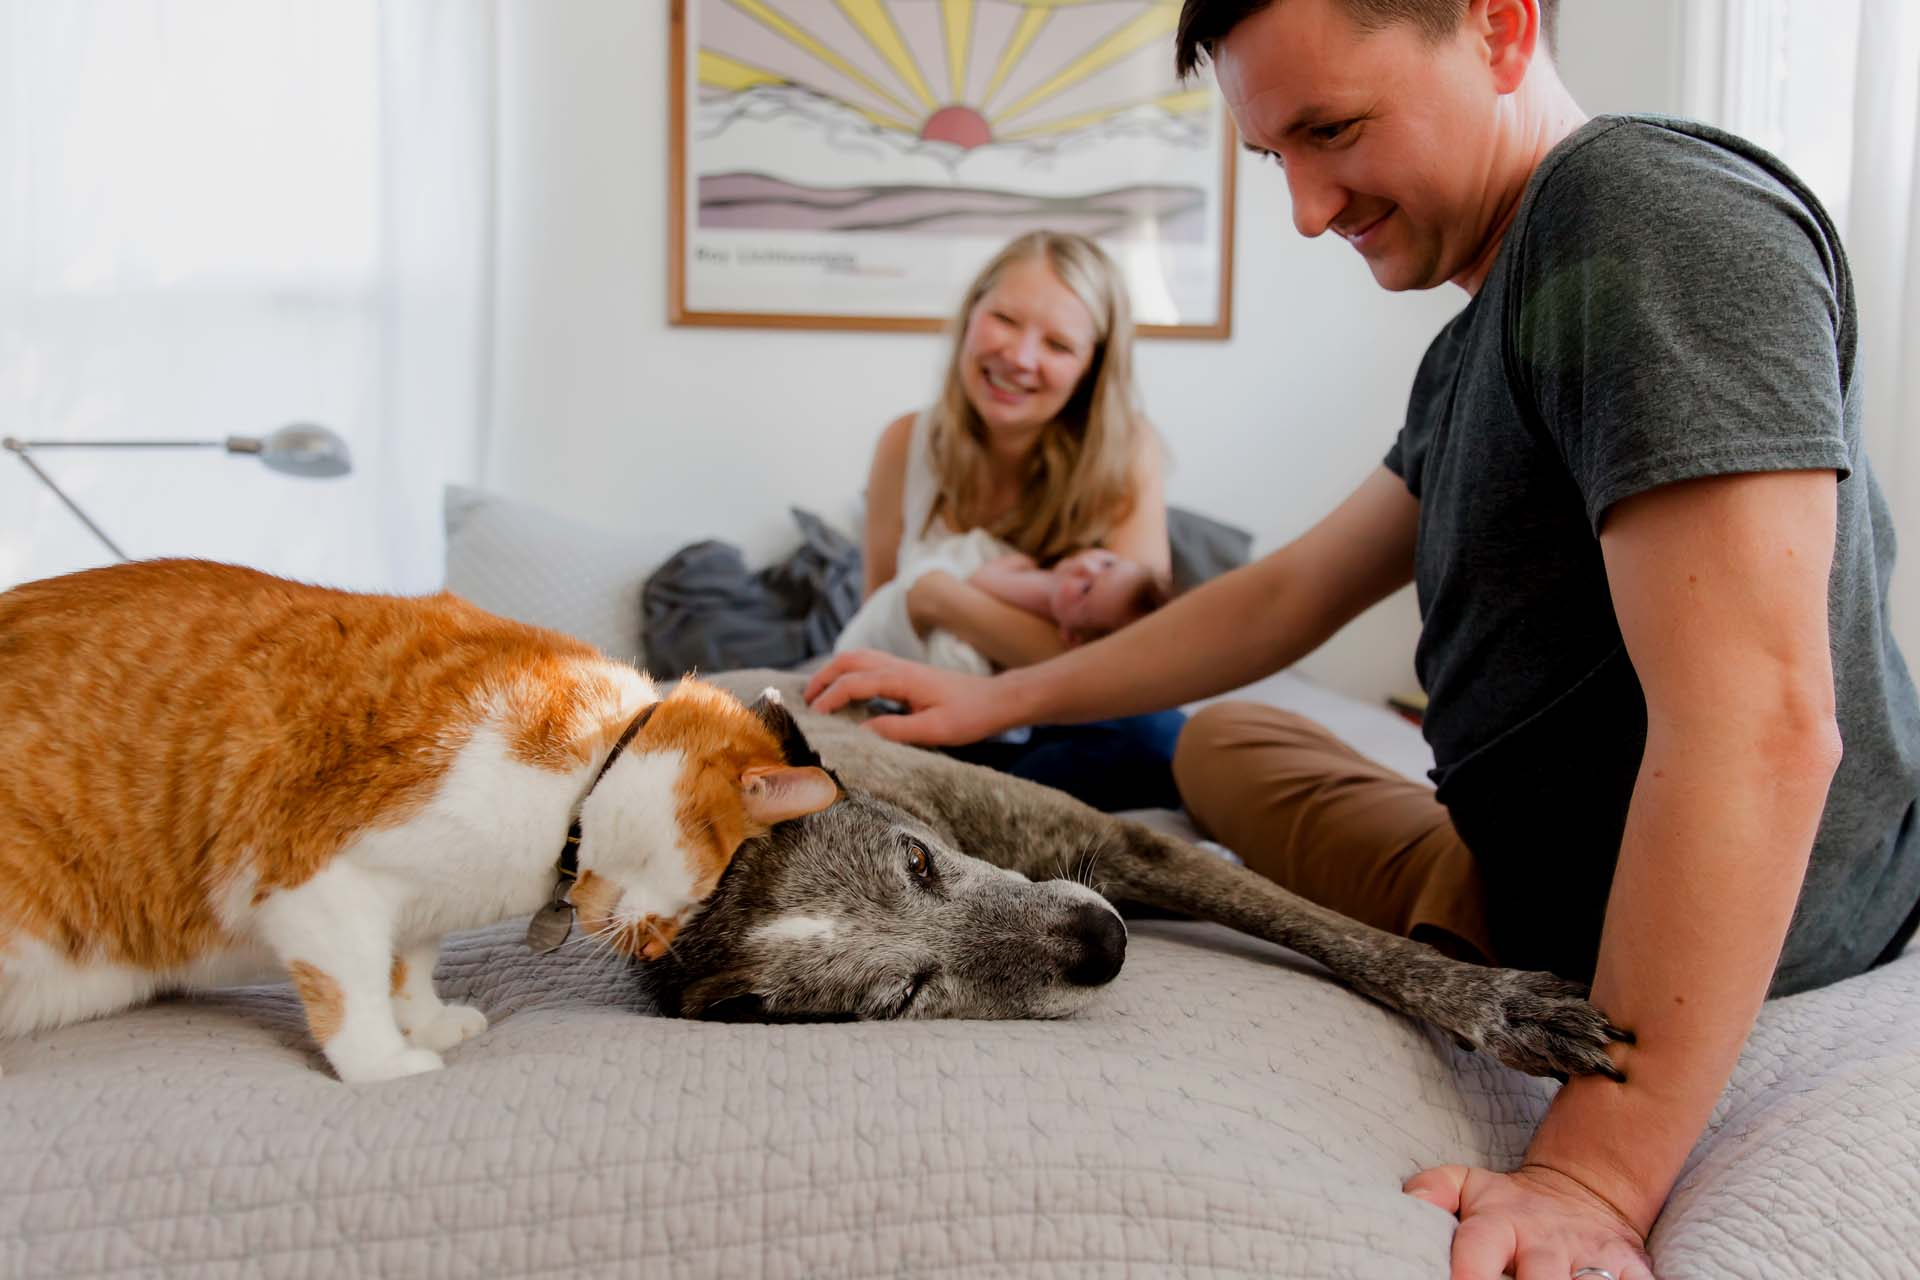 Family photo session with dog and cat and newborn baby in seattle by annie helen photography